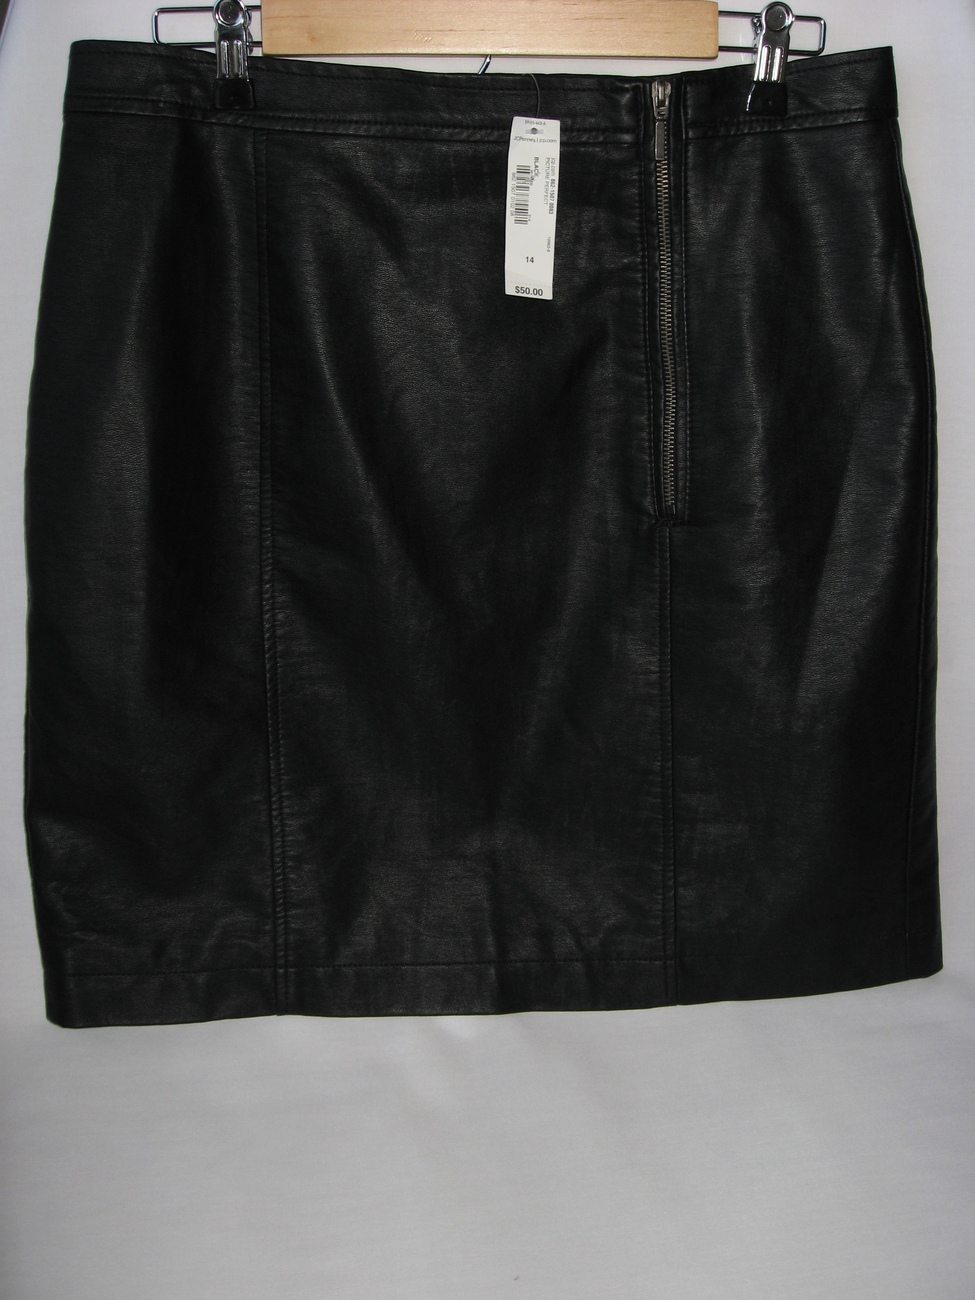 faux leather skirt black size 14 womens nwt i ronson